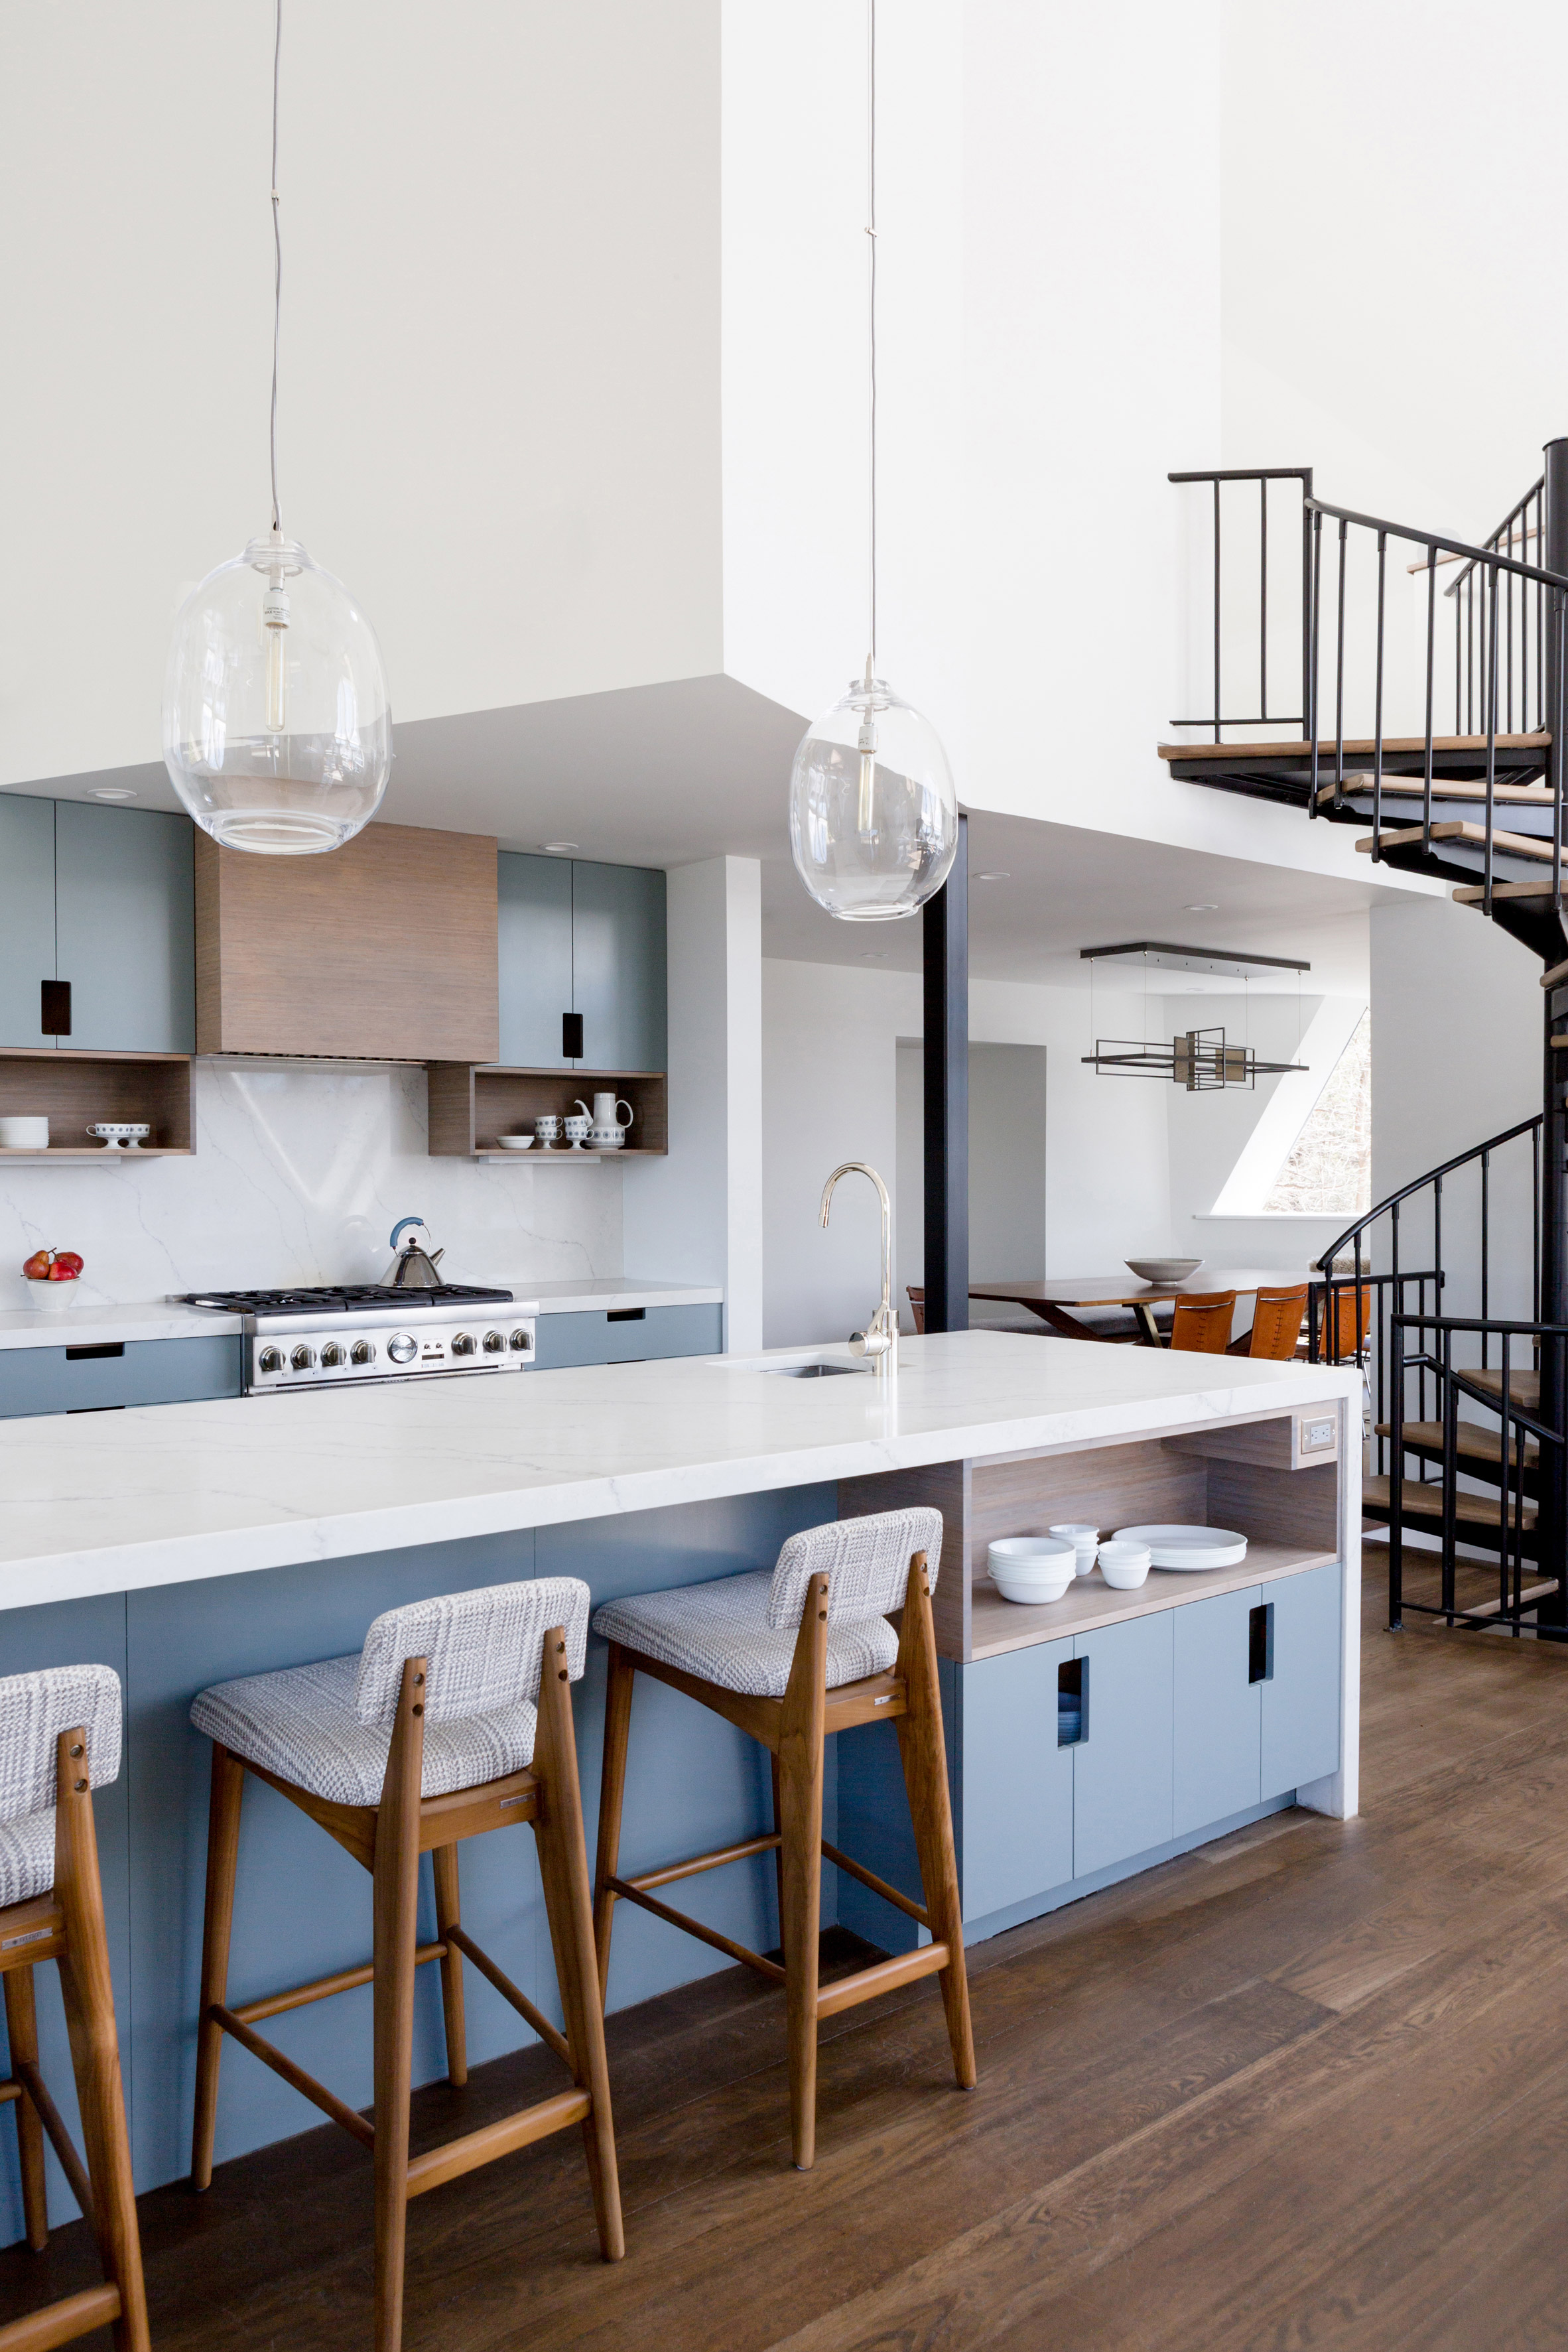 Renovated dome house by Jess Cooney